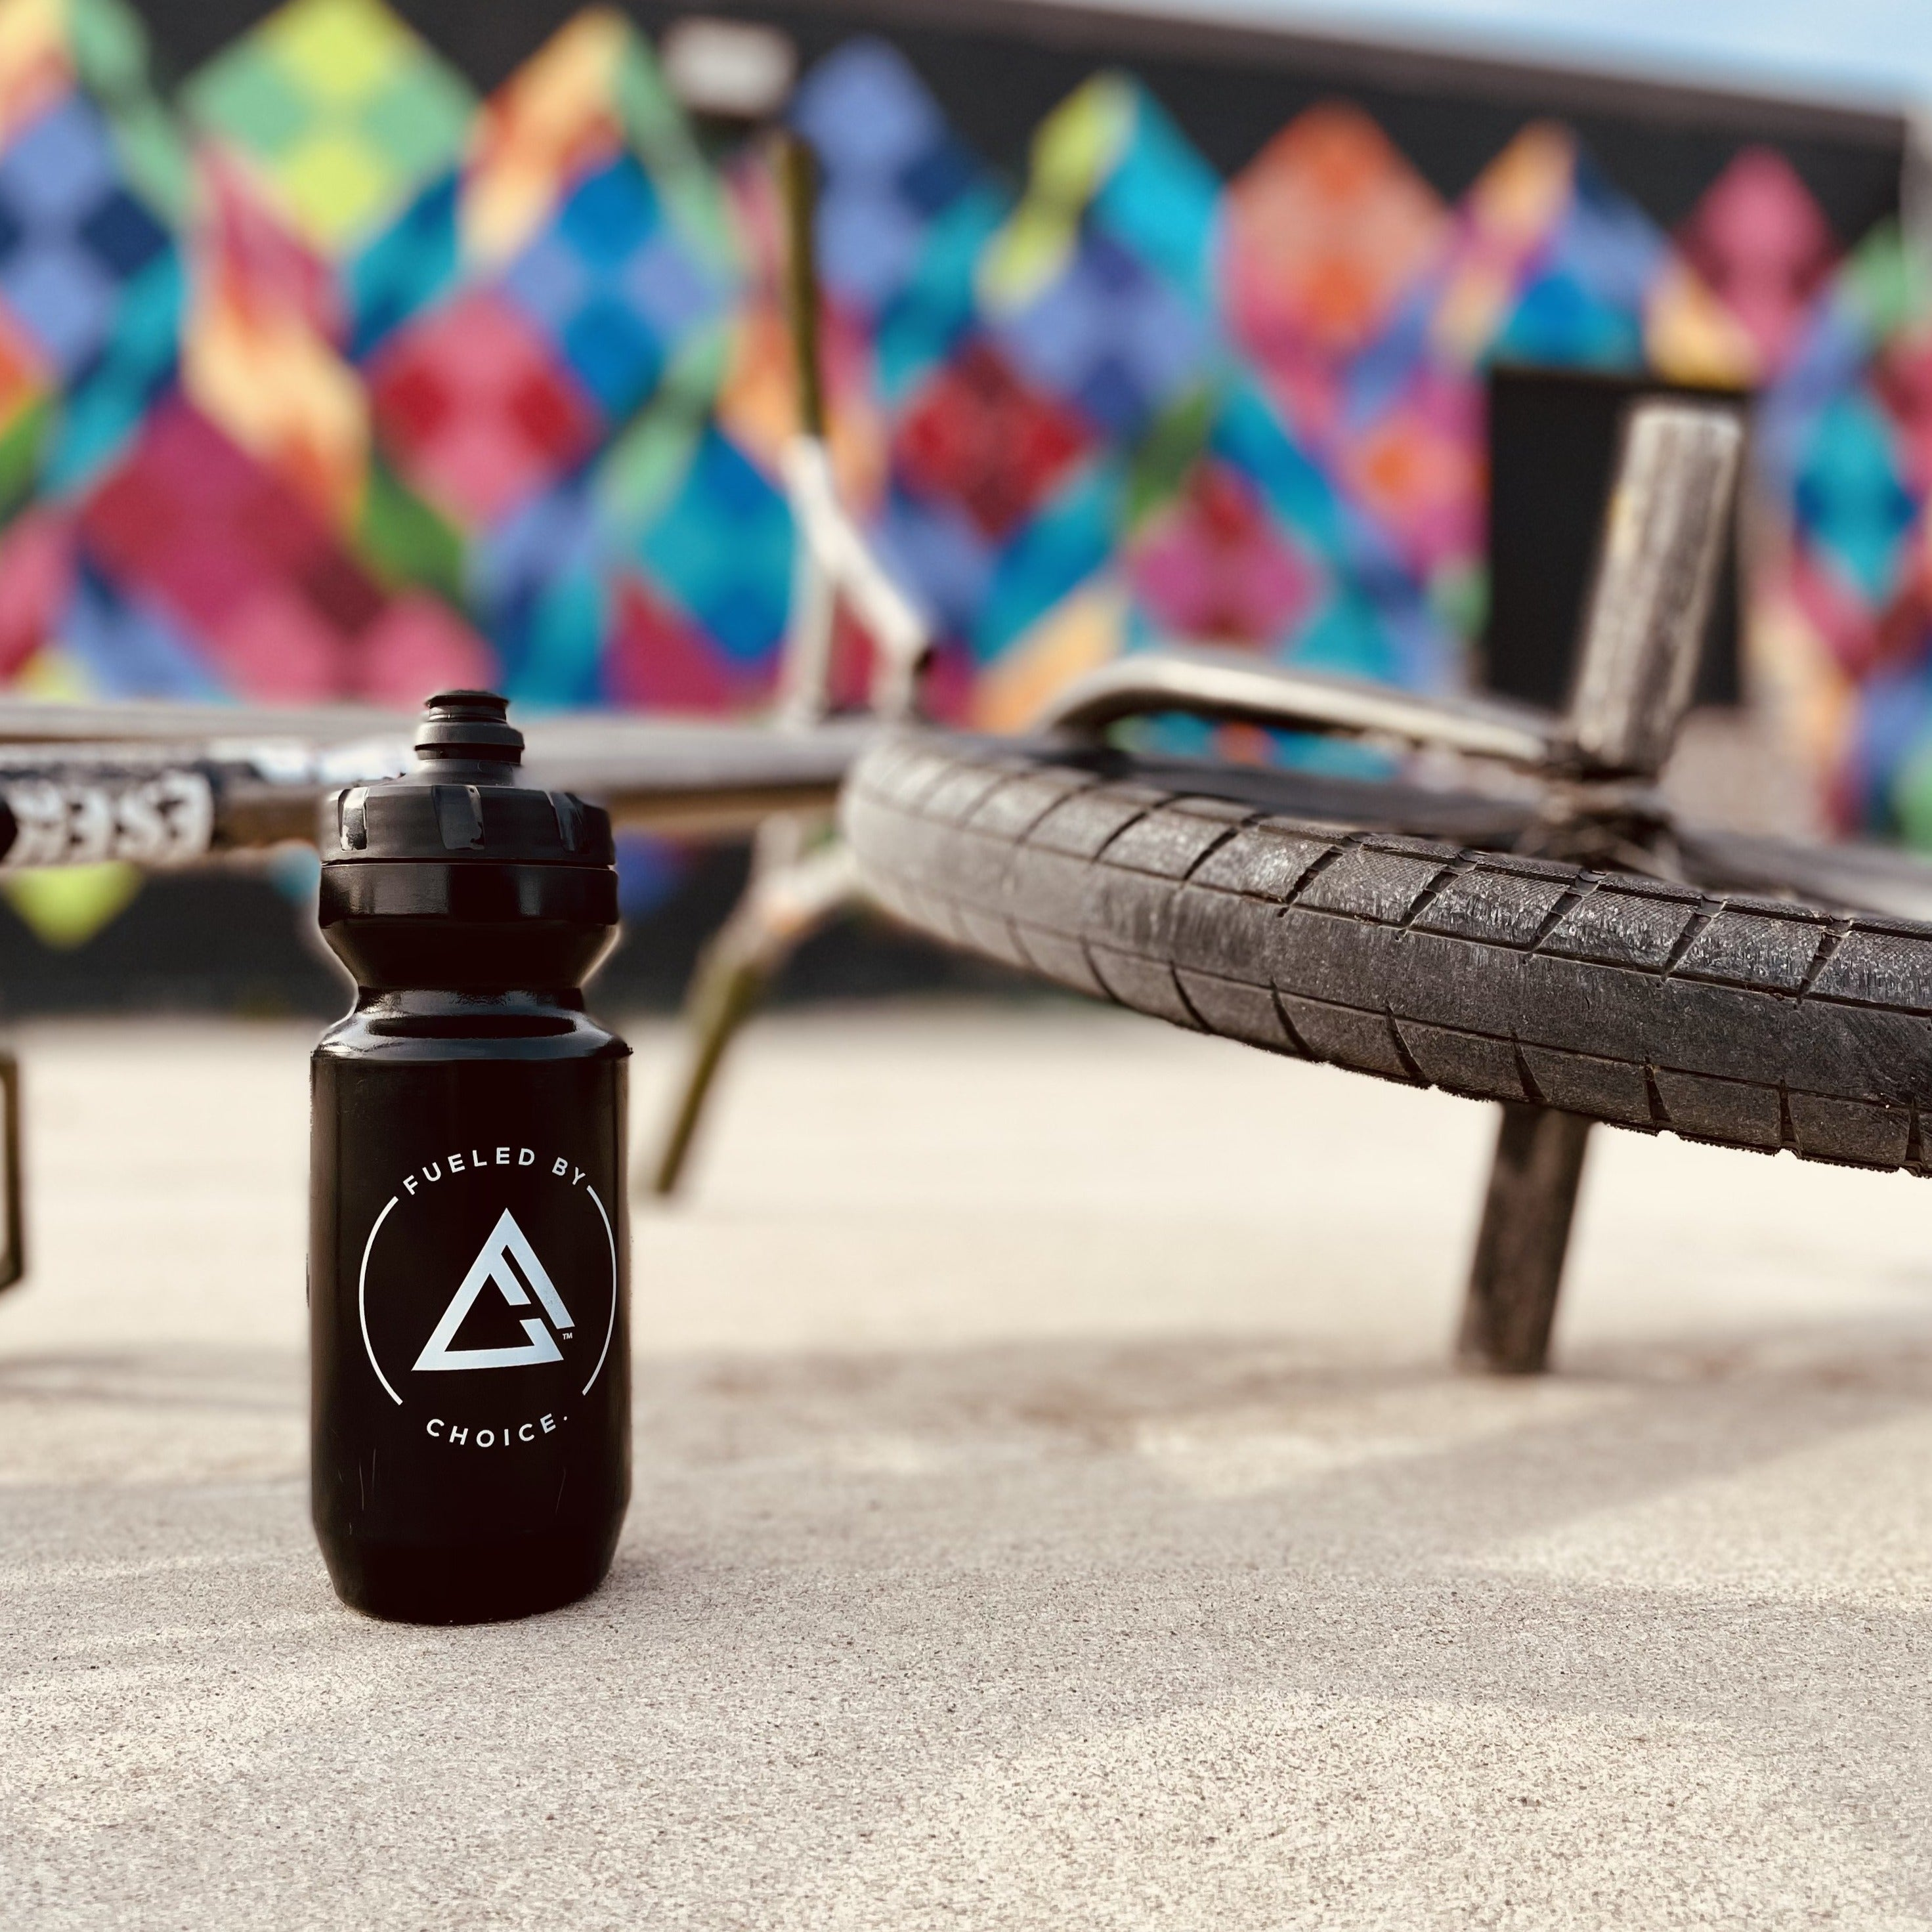 fueled by choice.™ — SPECIALIZED® 22 OZ PURIST WATER BOTTLE